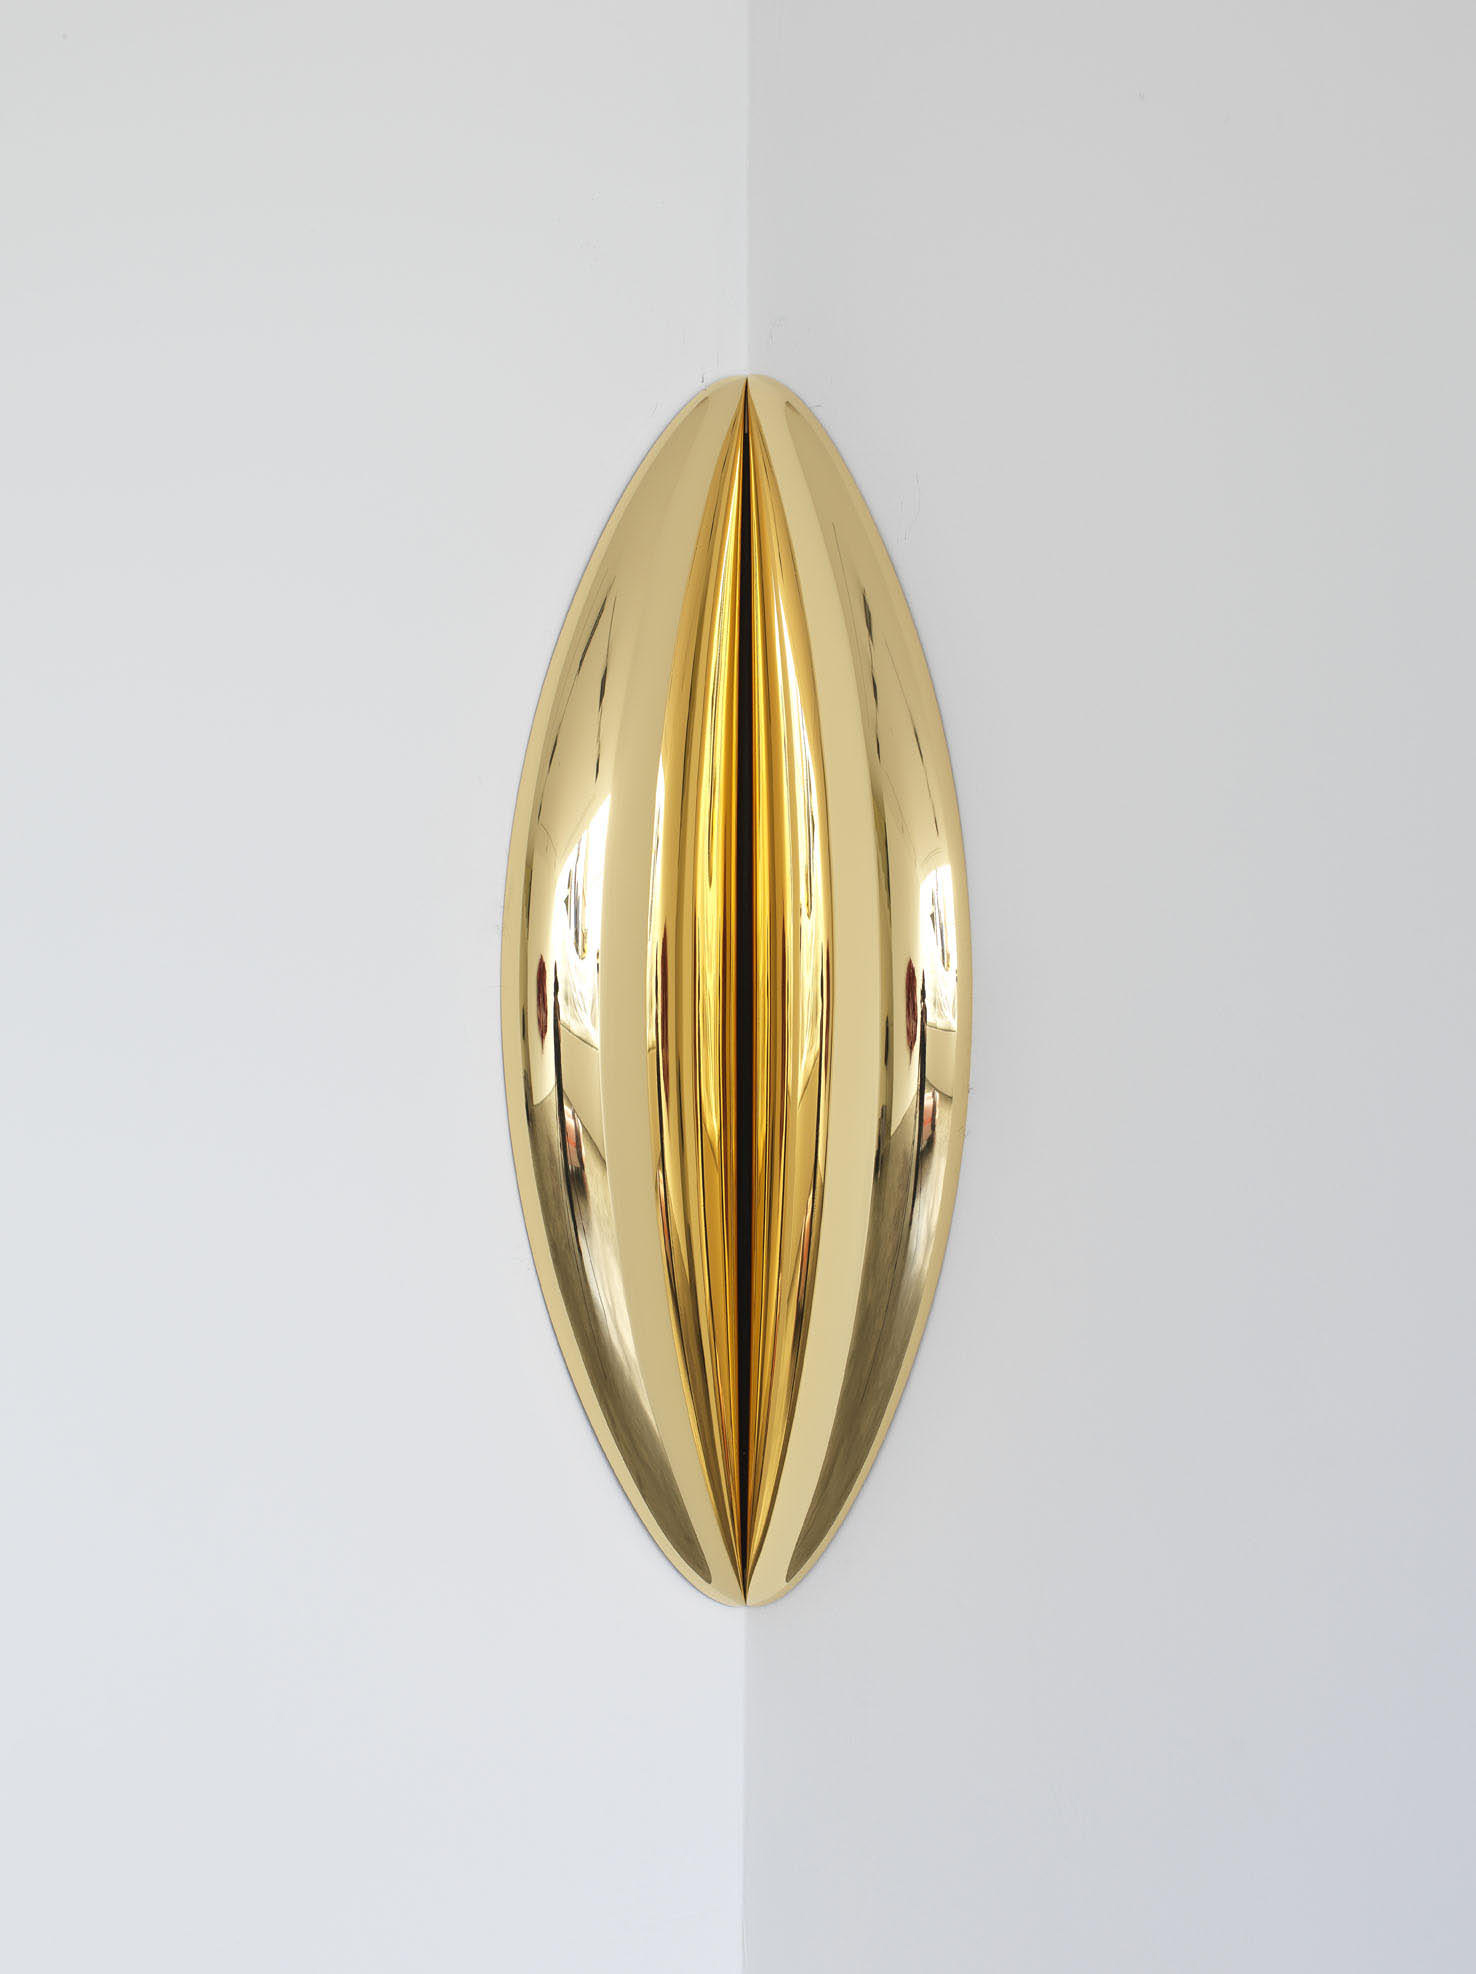 Anish Kapoor <em>In-between</em>, 2015. Stainless steel and gold 80 x 19 x 7 cm © the artist; Courtesy, Lisson Gallery, London (image ref #: KAPO150011-1)